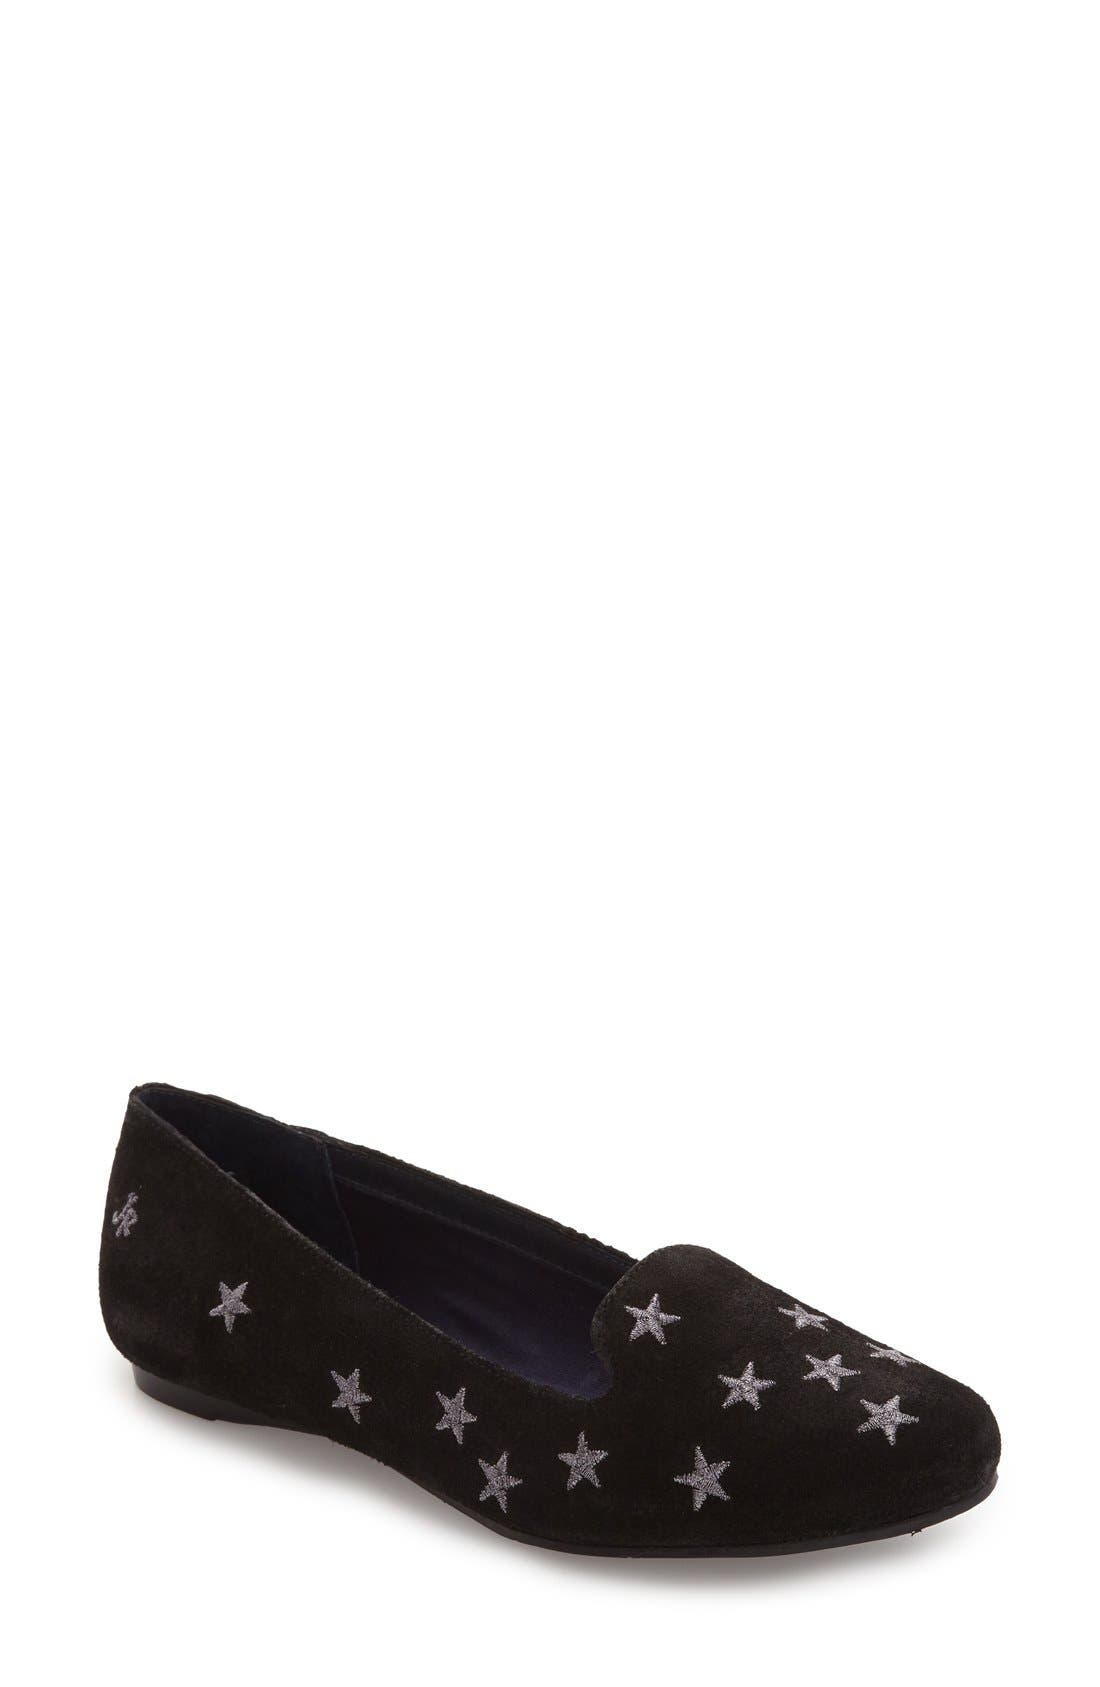 Starstuck Loafer,                             Main thumbnail 1, color,                             Black Suede